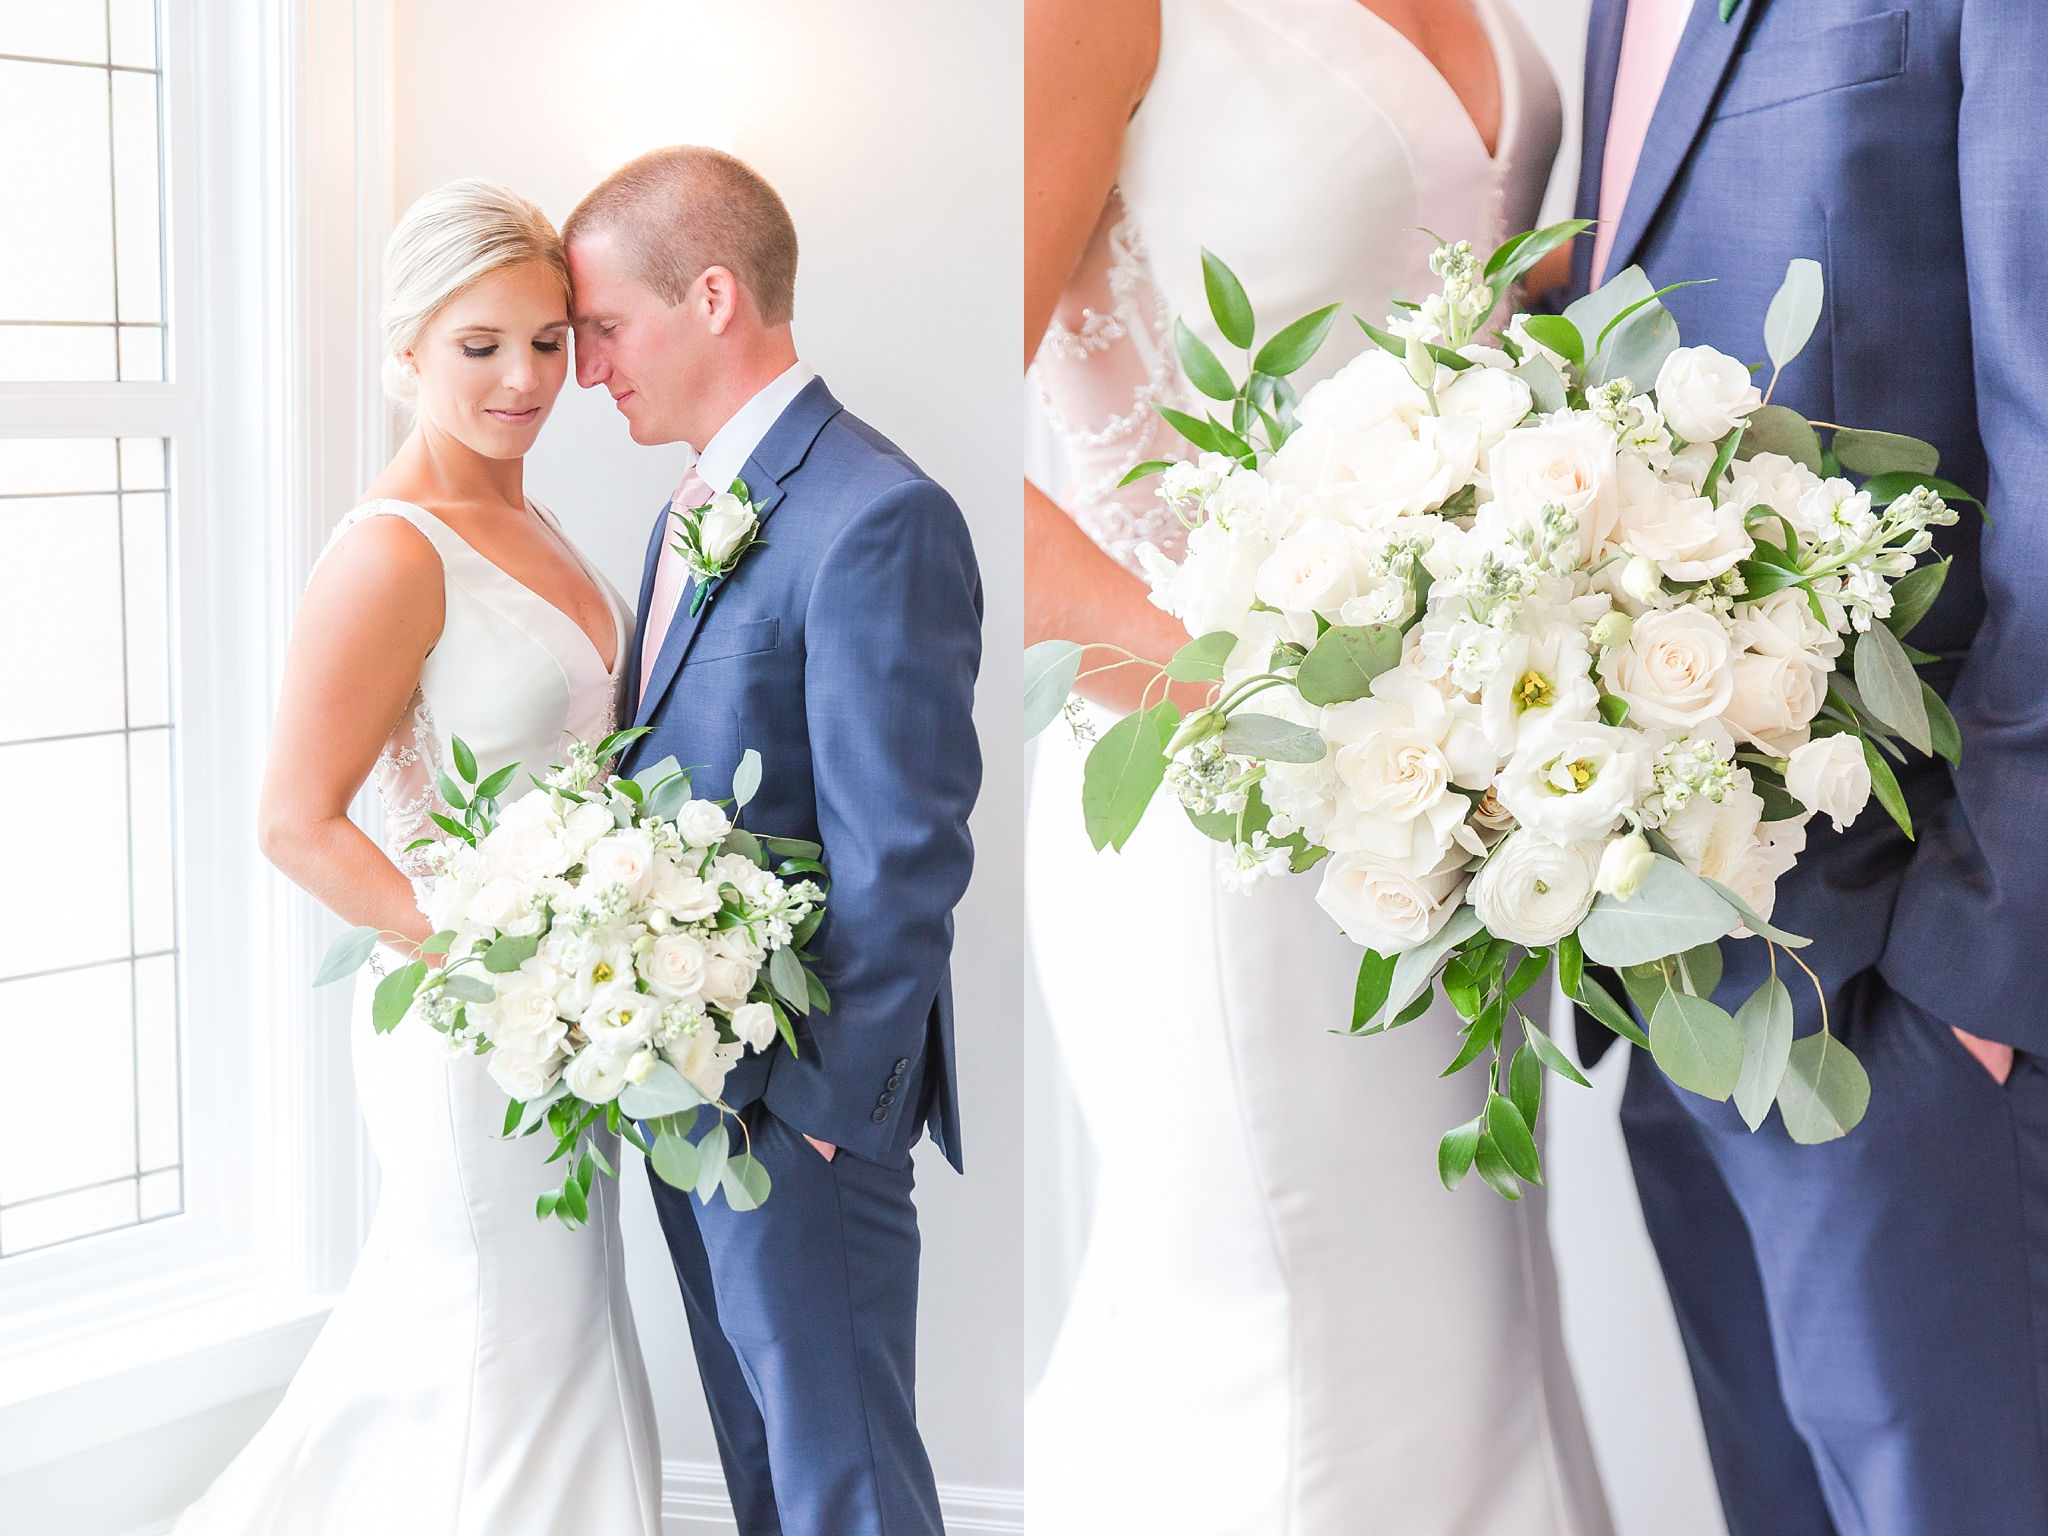 casually-chic-modern-wedding-photos-at-the-chapman-house-in-rochester-michigan-by-courtney-carolyn-photography_0016.jpg